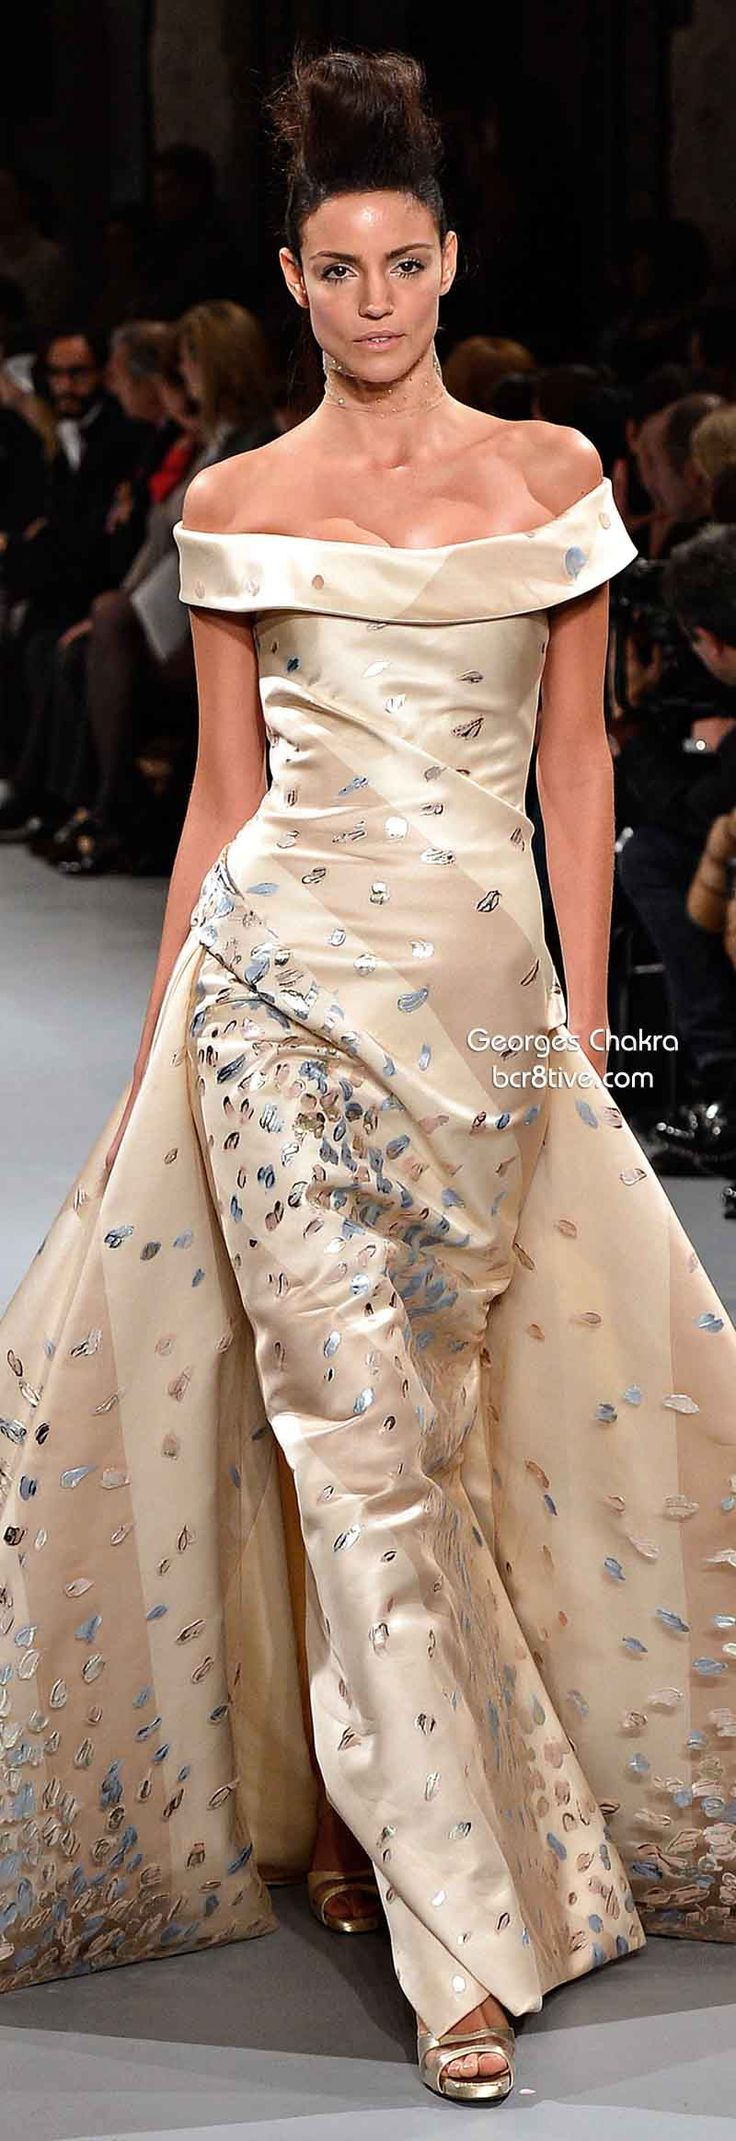 Georges Chakra Spring 2014 Couture Collection. Absoultly love this! Can someone please invite me to a gala so I can wear this, not that I can afford it, but hey, one can dream, yes? Just beautiful!!